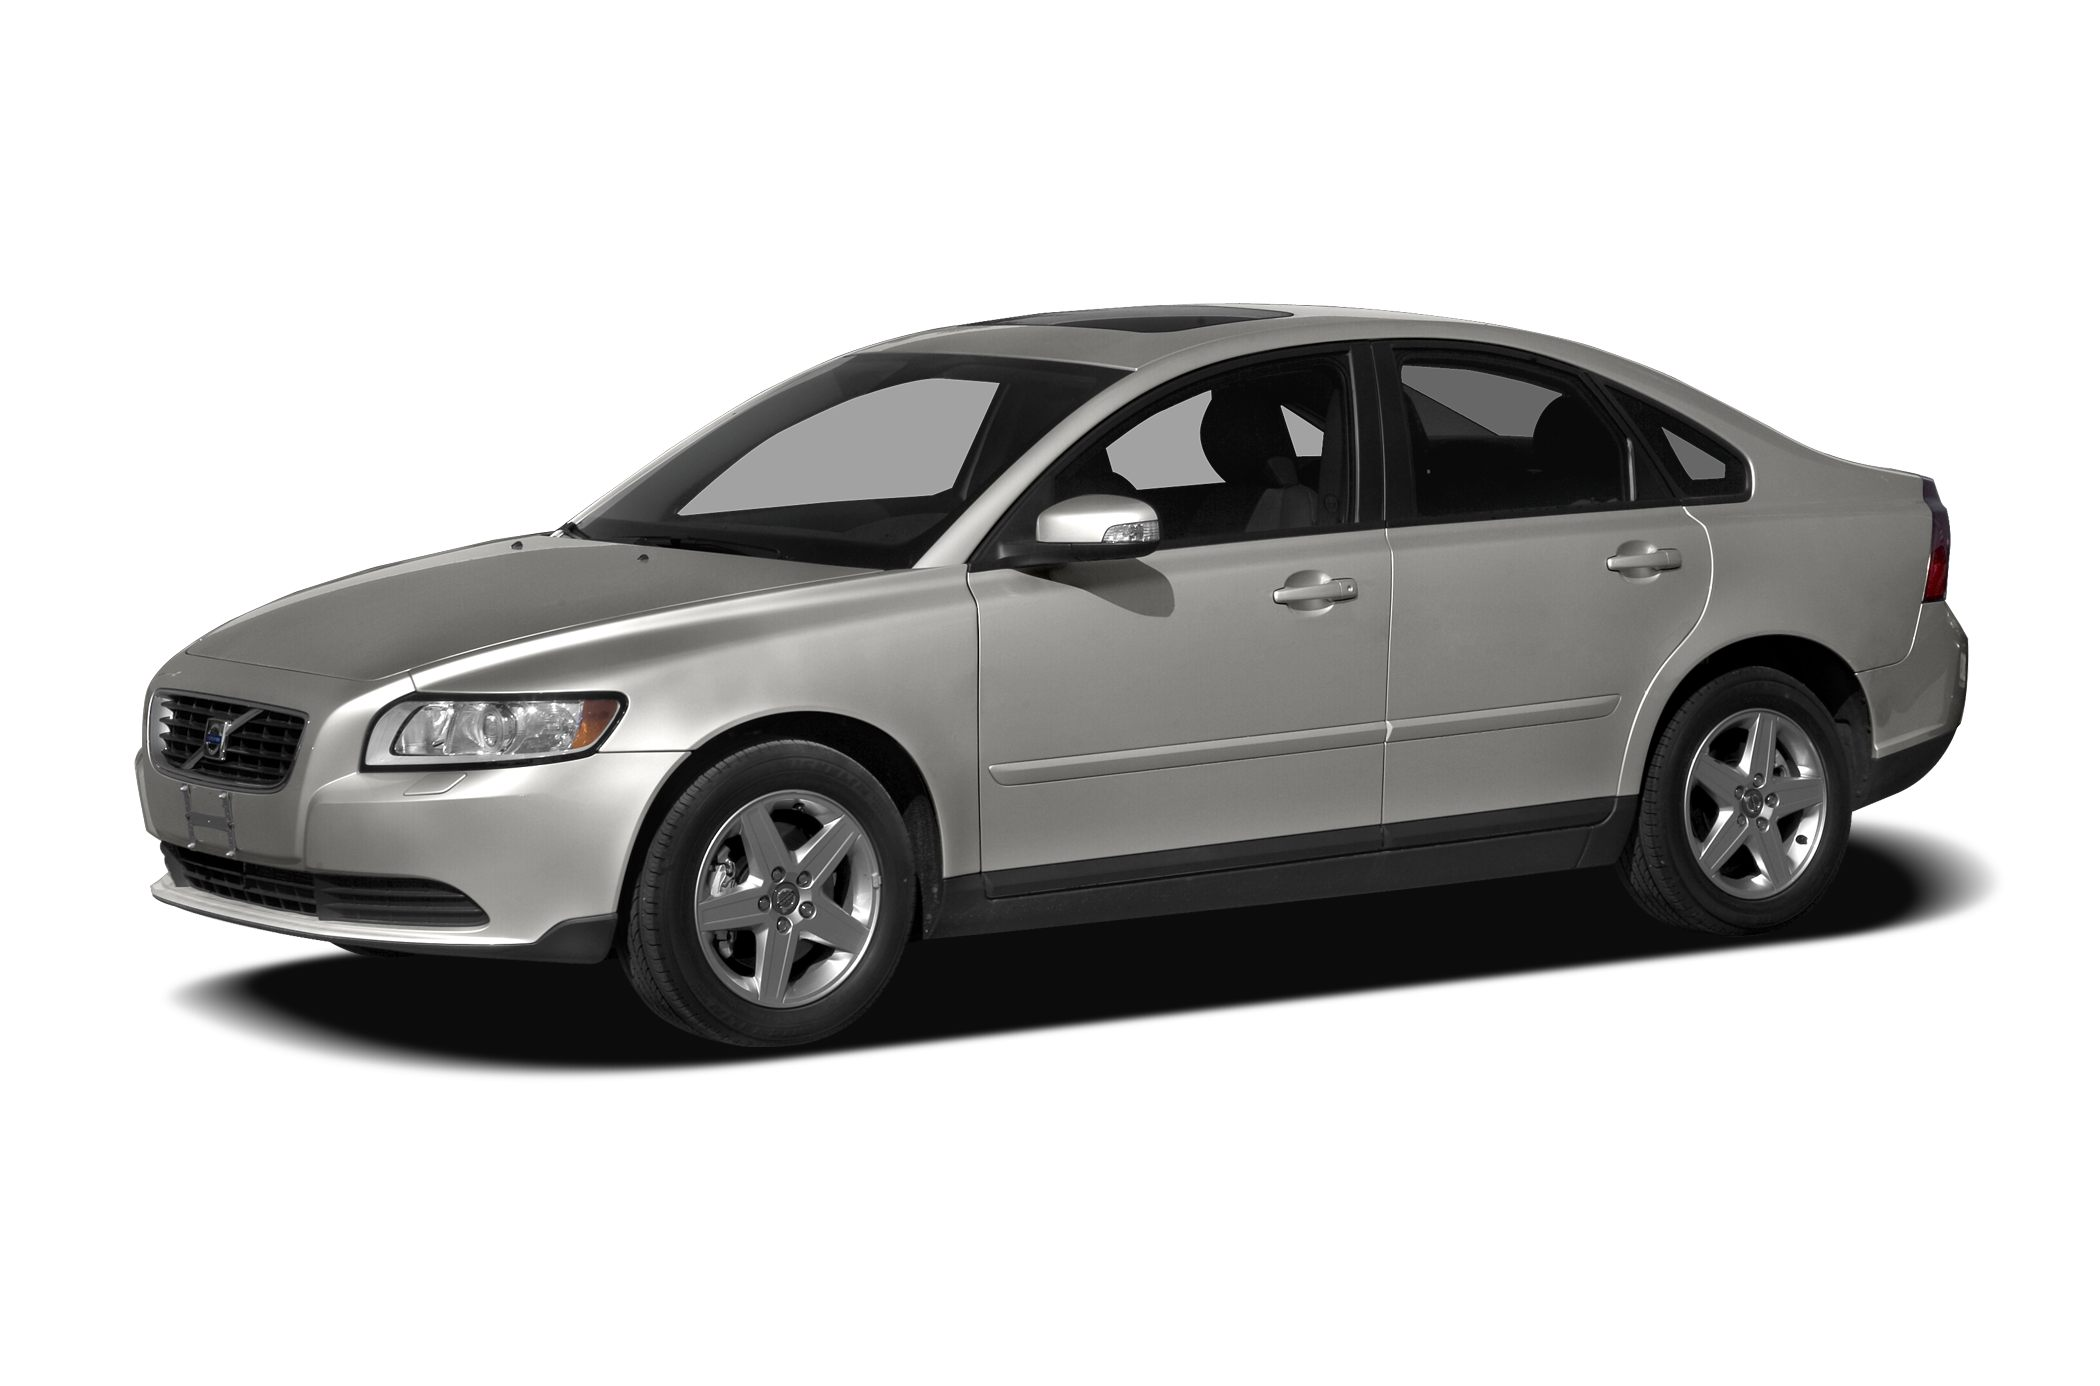 2008 Volvo S40 2.4i Sedan for sale in Charleston for $0 with 97,397 miles